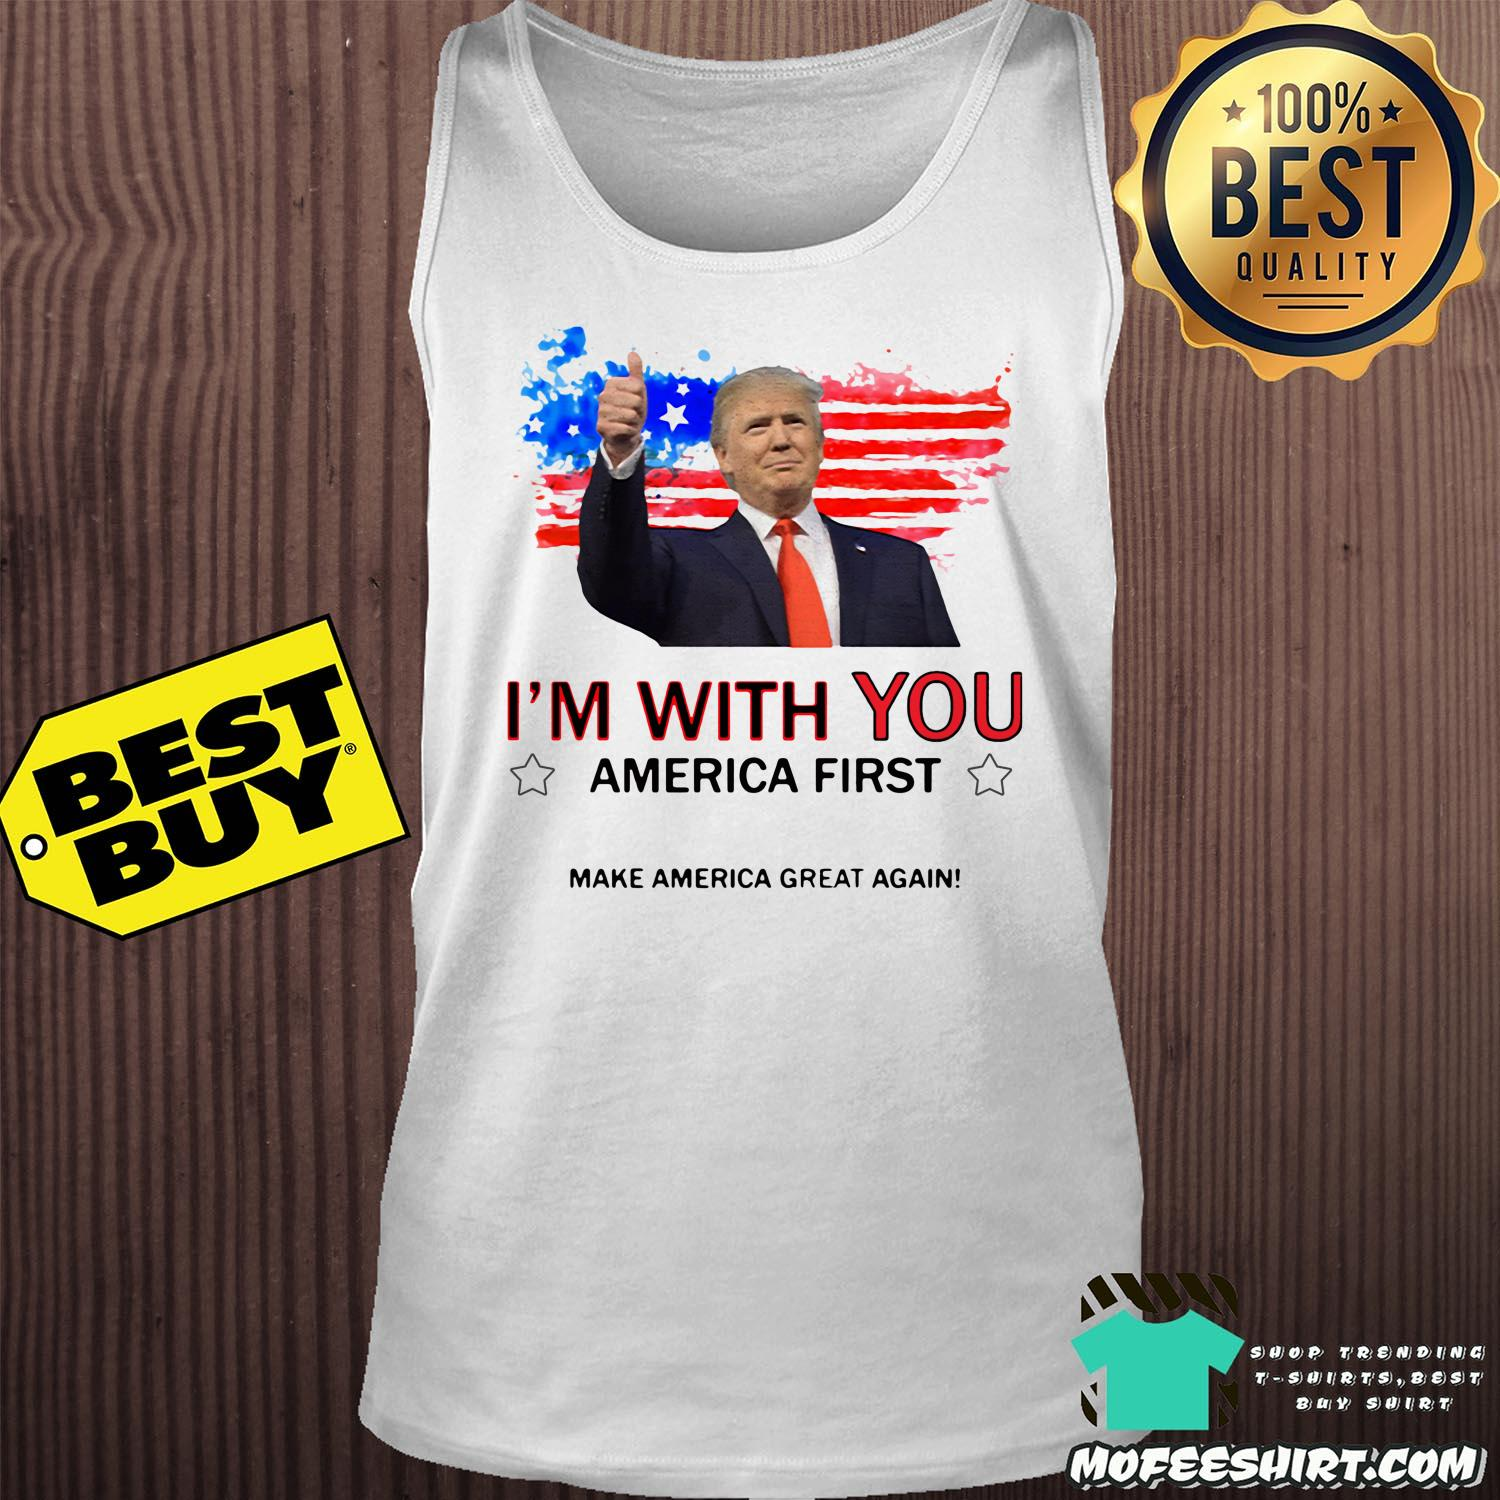 im with you america first make america great again donald trump tank top - I'm With You America First Make America Great Again Donald Trump Shirt